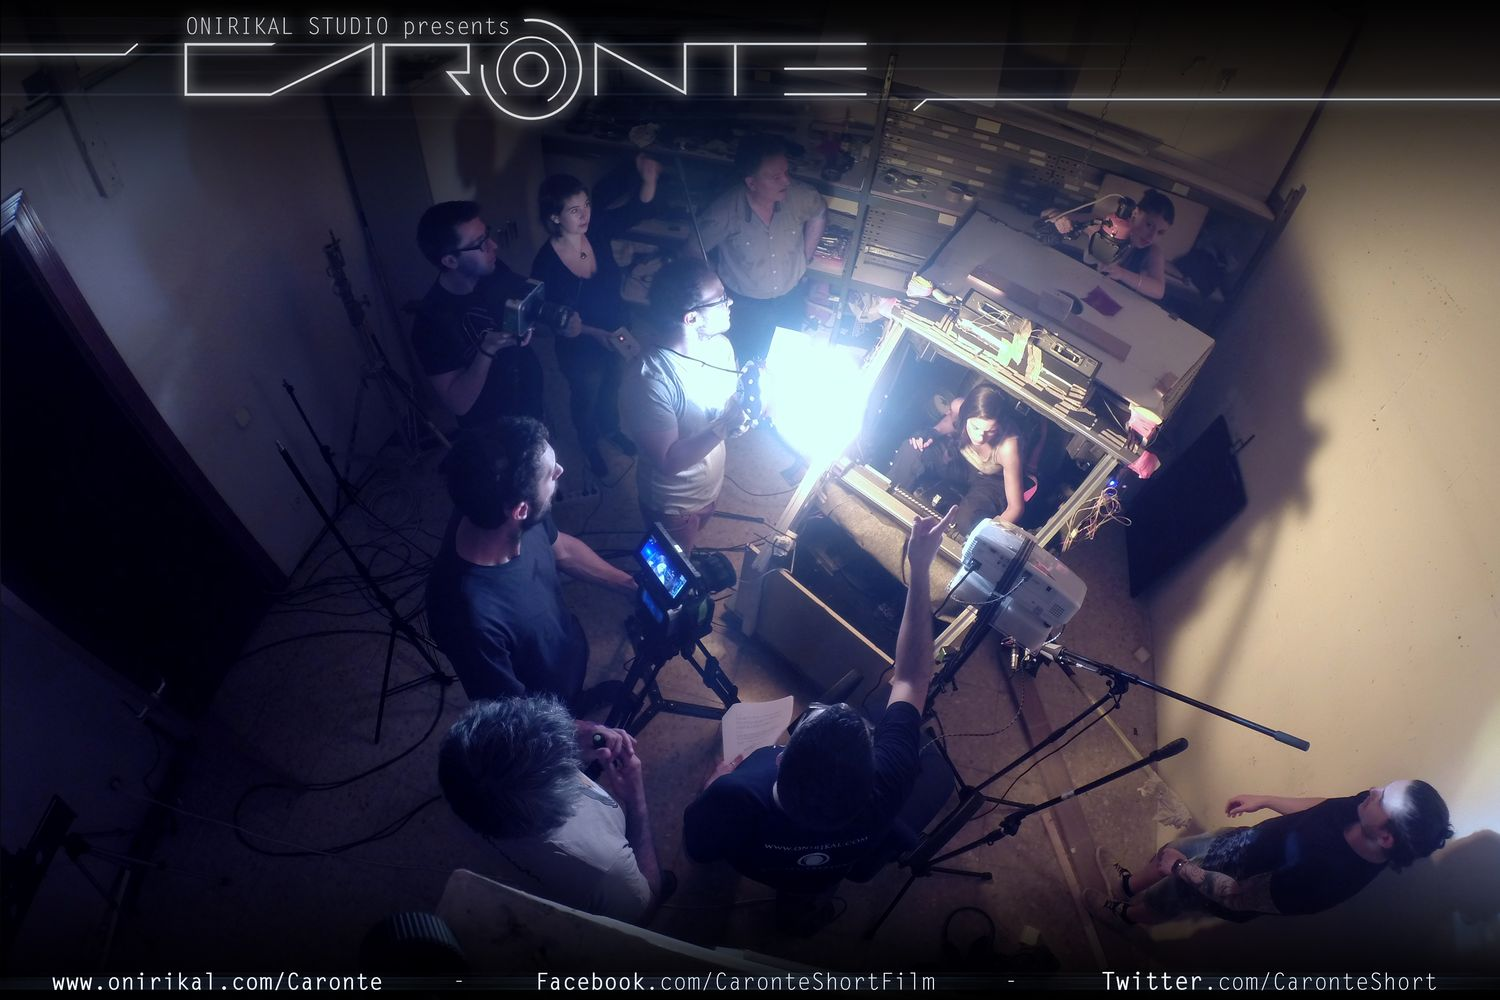 Caronte, a scifi shortfilm produced by Onirikal Studio and directed by Luis Tinoco. Melina Matthews on CARONTE. VFX GC GCI 3D ANIMATION VISUAL EFFECTS SCIENCIE FICTION FILM